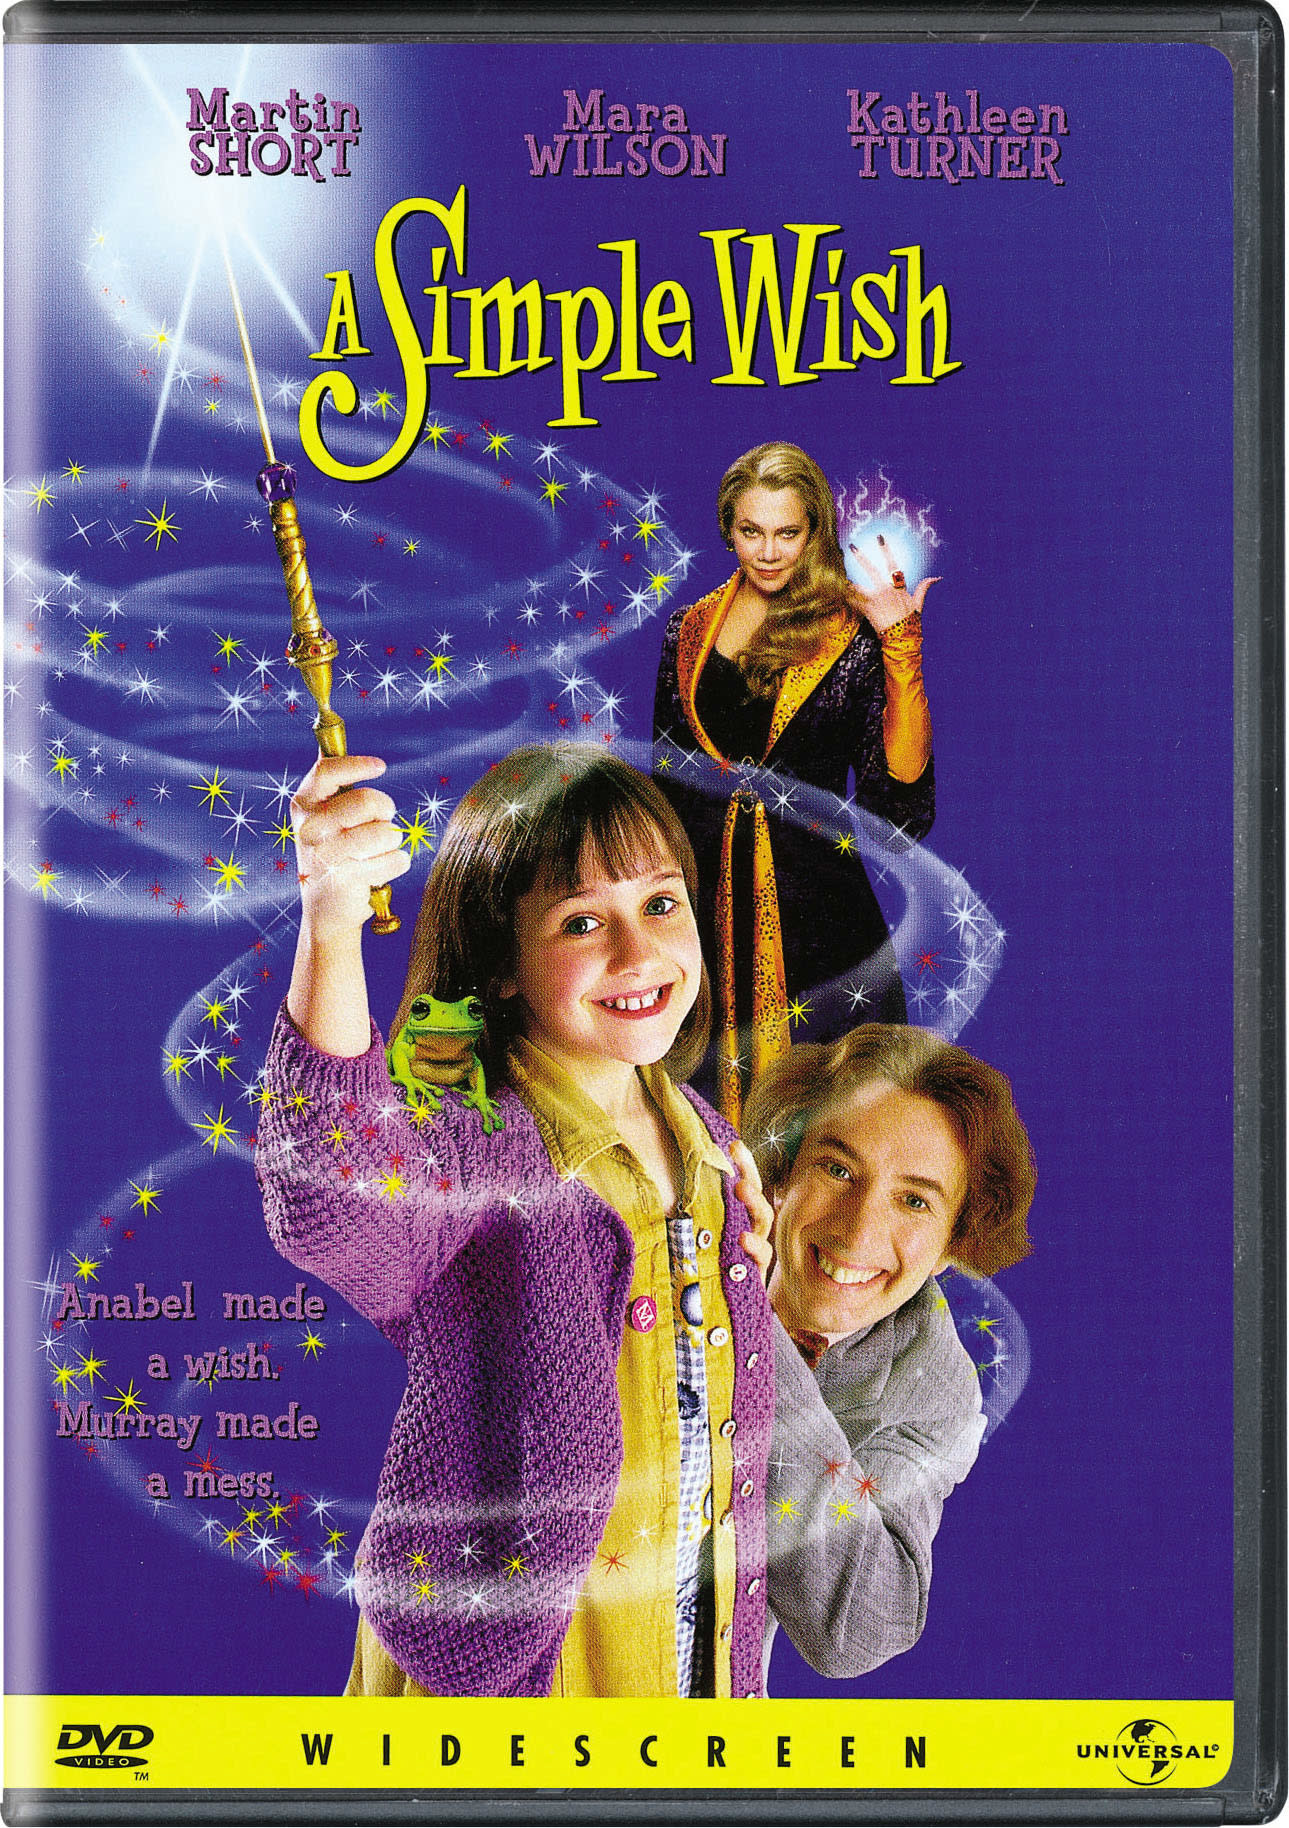 A Simple Wish (1997) (Widescreen) [DVD]